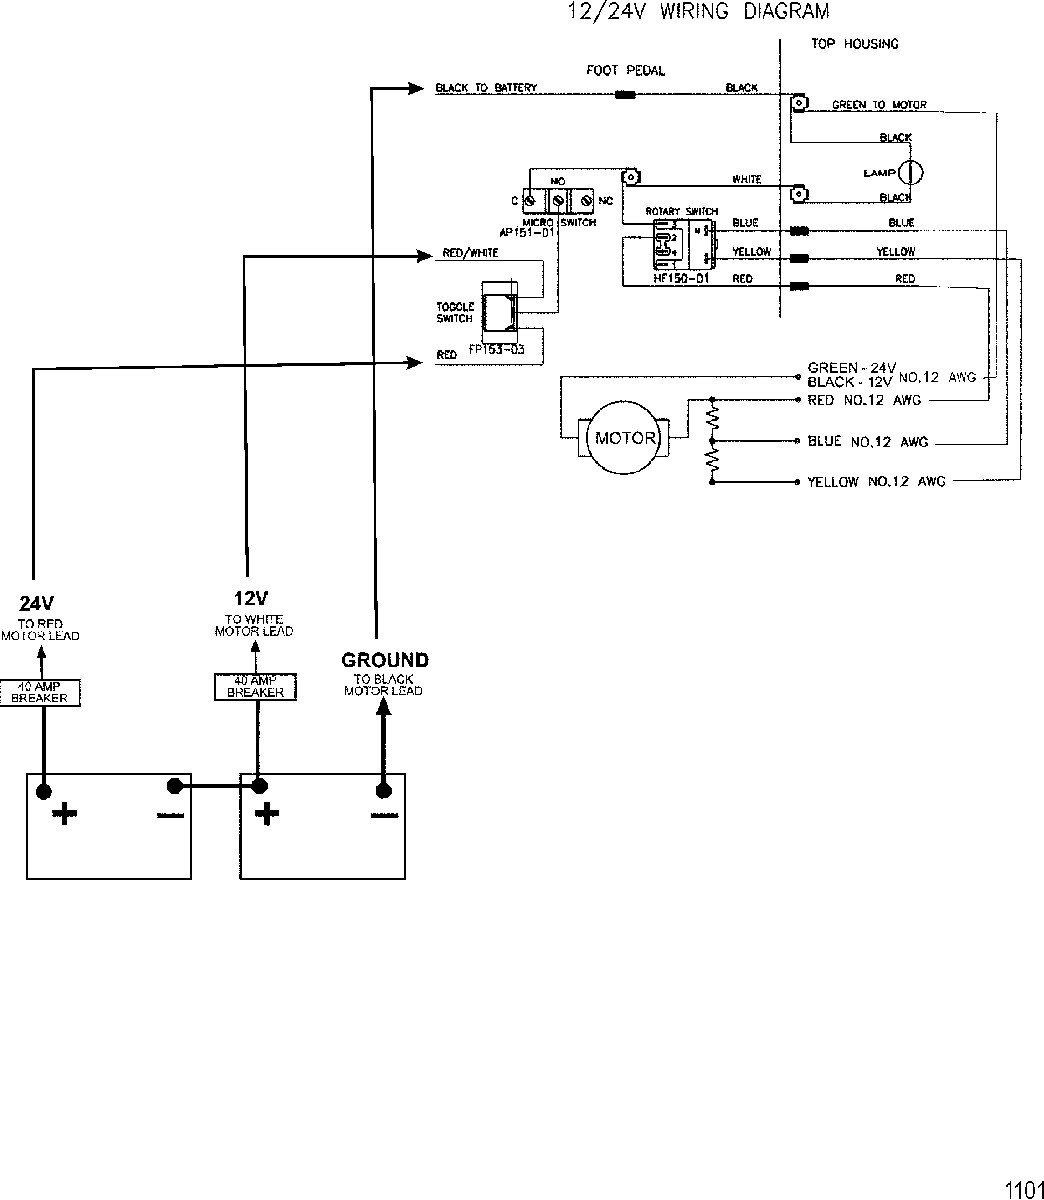 wiring diagram also 12 24 volt trolling motor wiring on motorguide 27 Volt Trolling Motor Diagram johnson trolling motor 12 volt wiring diagram manual e books wiring diagram also 12 24 volt trolling motor wiring on motorguide 12